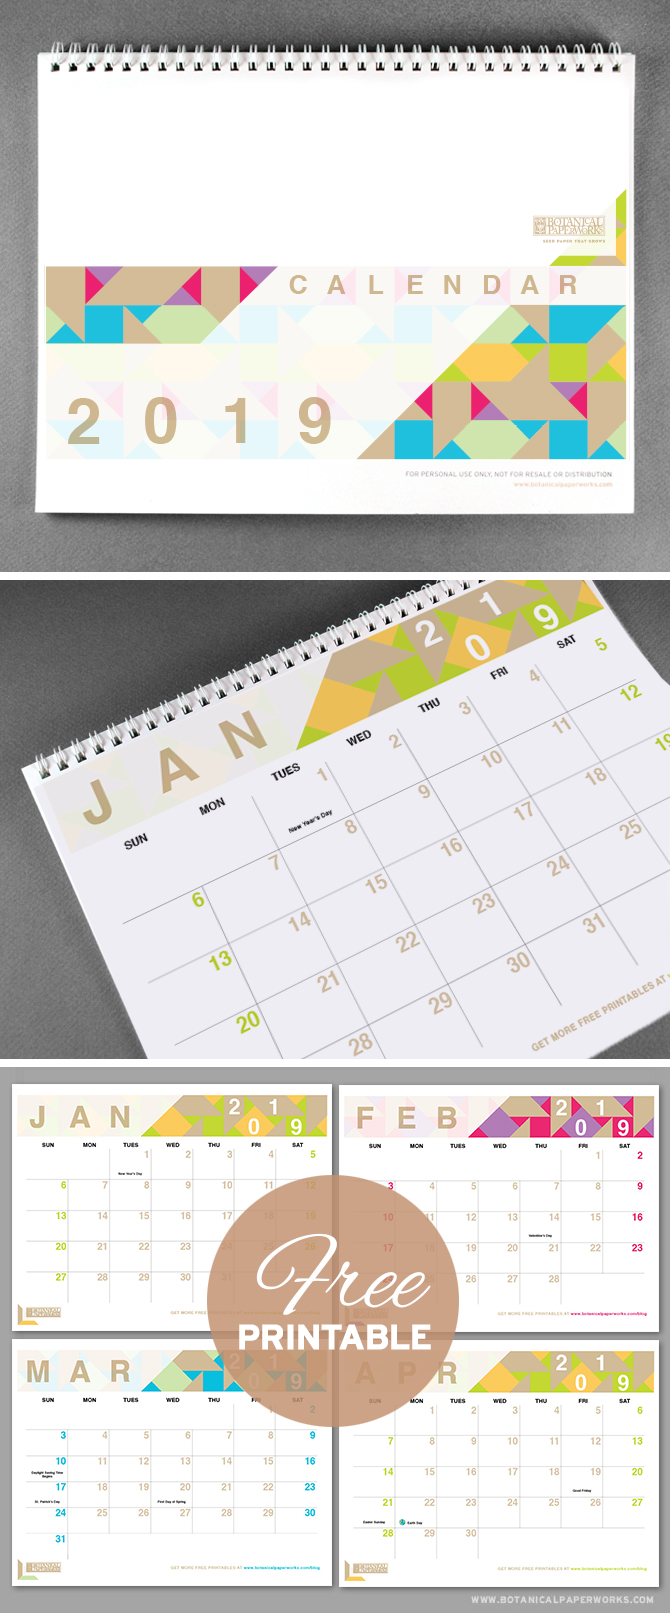 With bright pops of colour and a chic modern design, this 2019 free printable is perfect for capturing all of life's important dates. See more designs and download your favorite 2019 calendar on our blog!